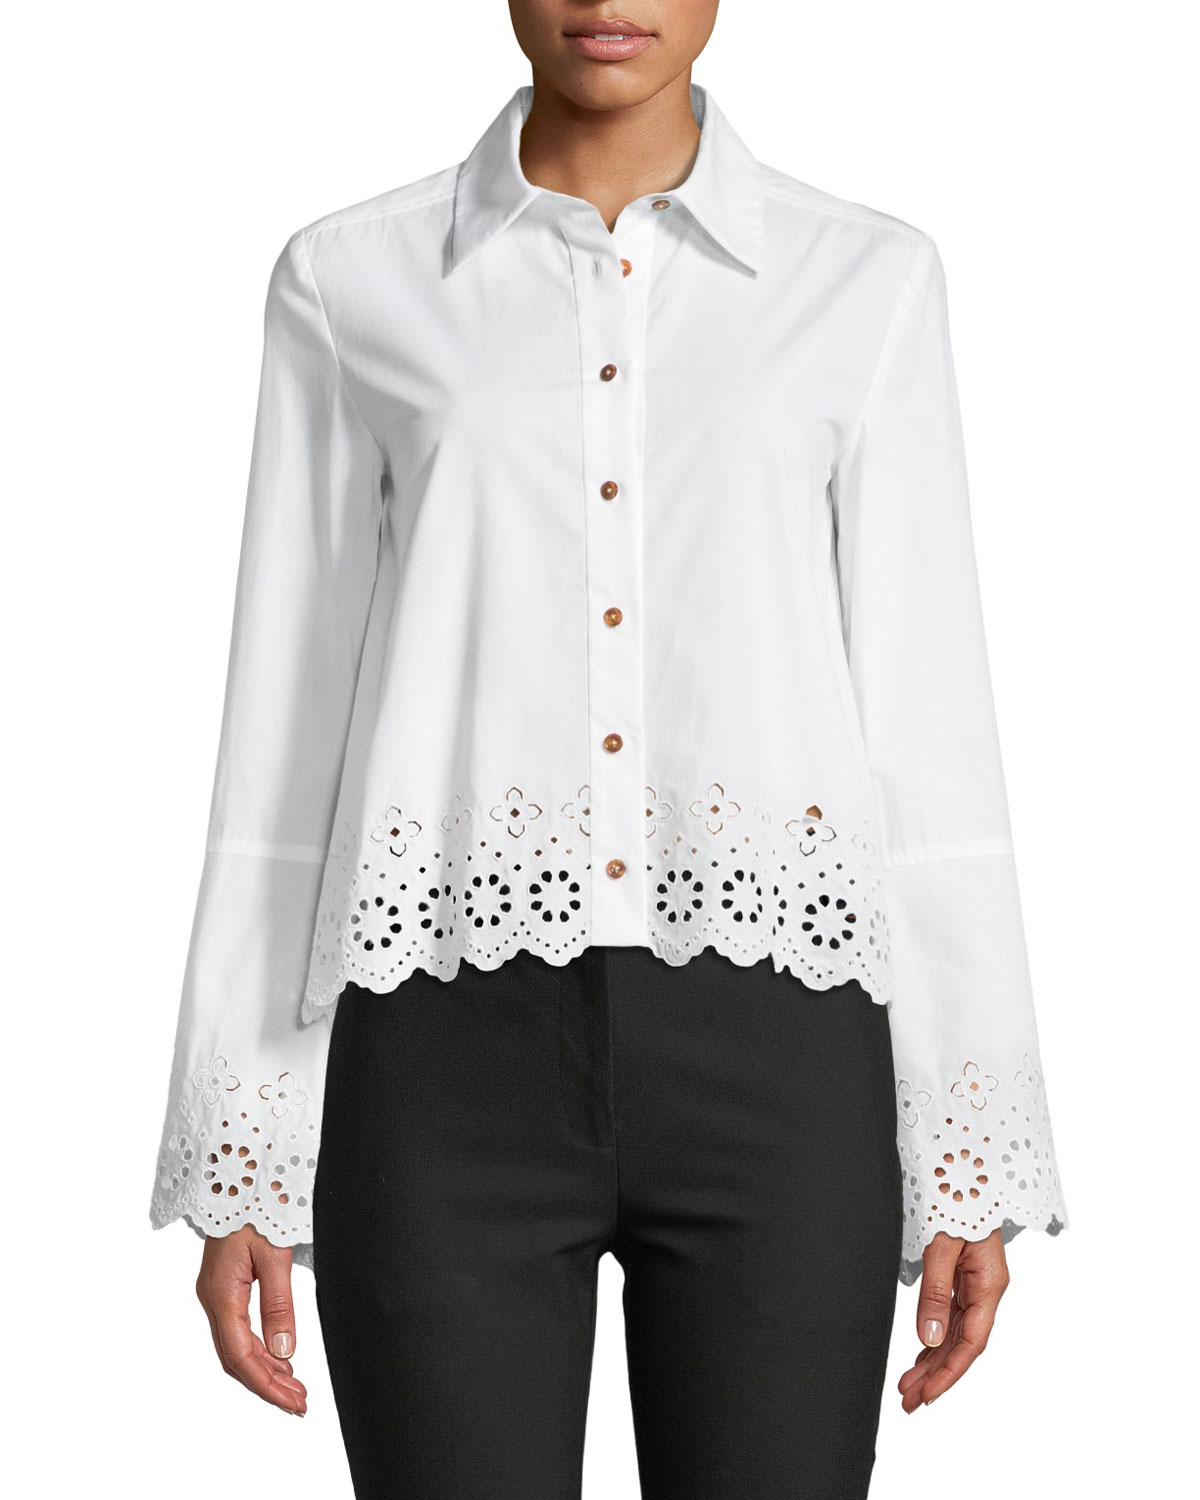 0a08c4d6 Derek Lam 10 Crosby Long-Sleeve Button-Down Shirt with Eyelet Embroidery